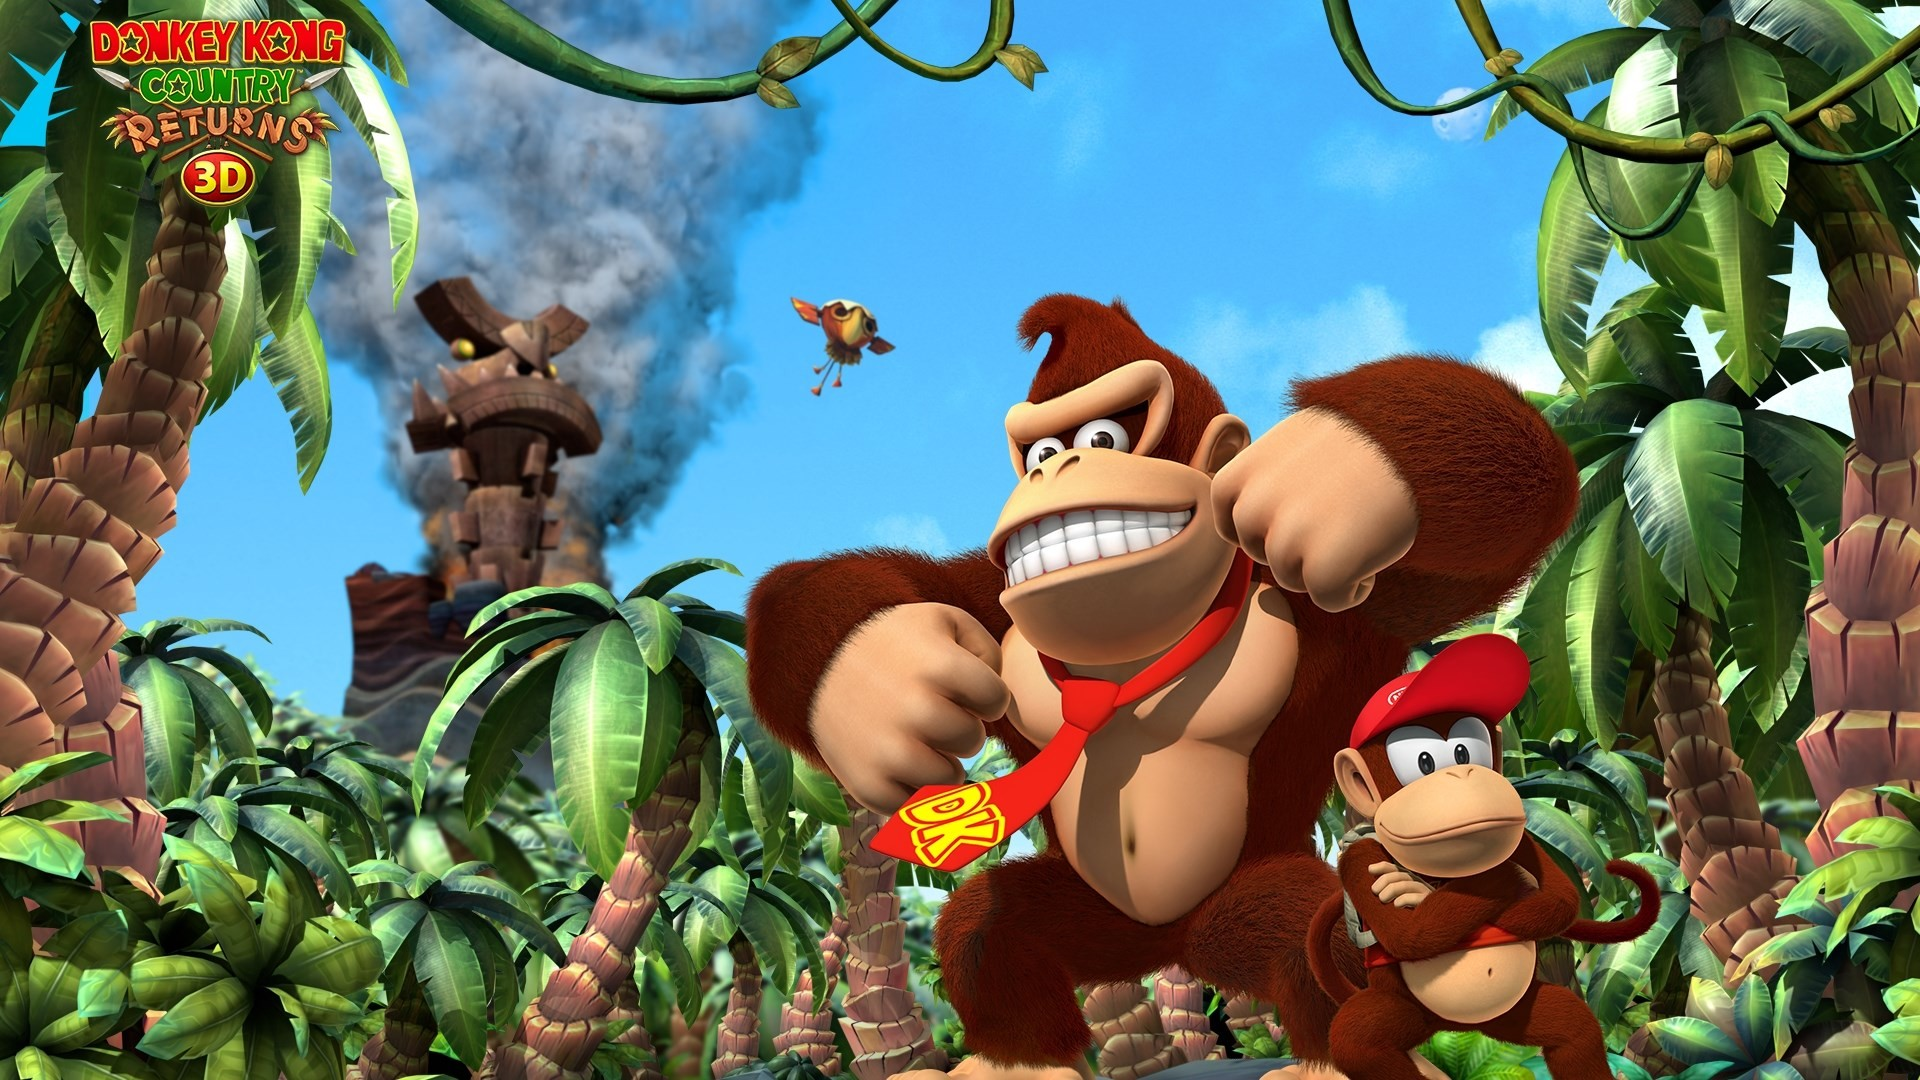 Donkey Kong Country Returns Wallpaper 84 Images